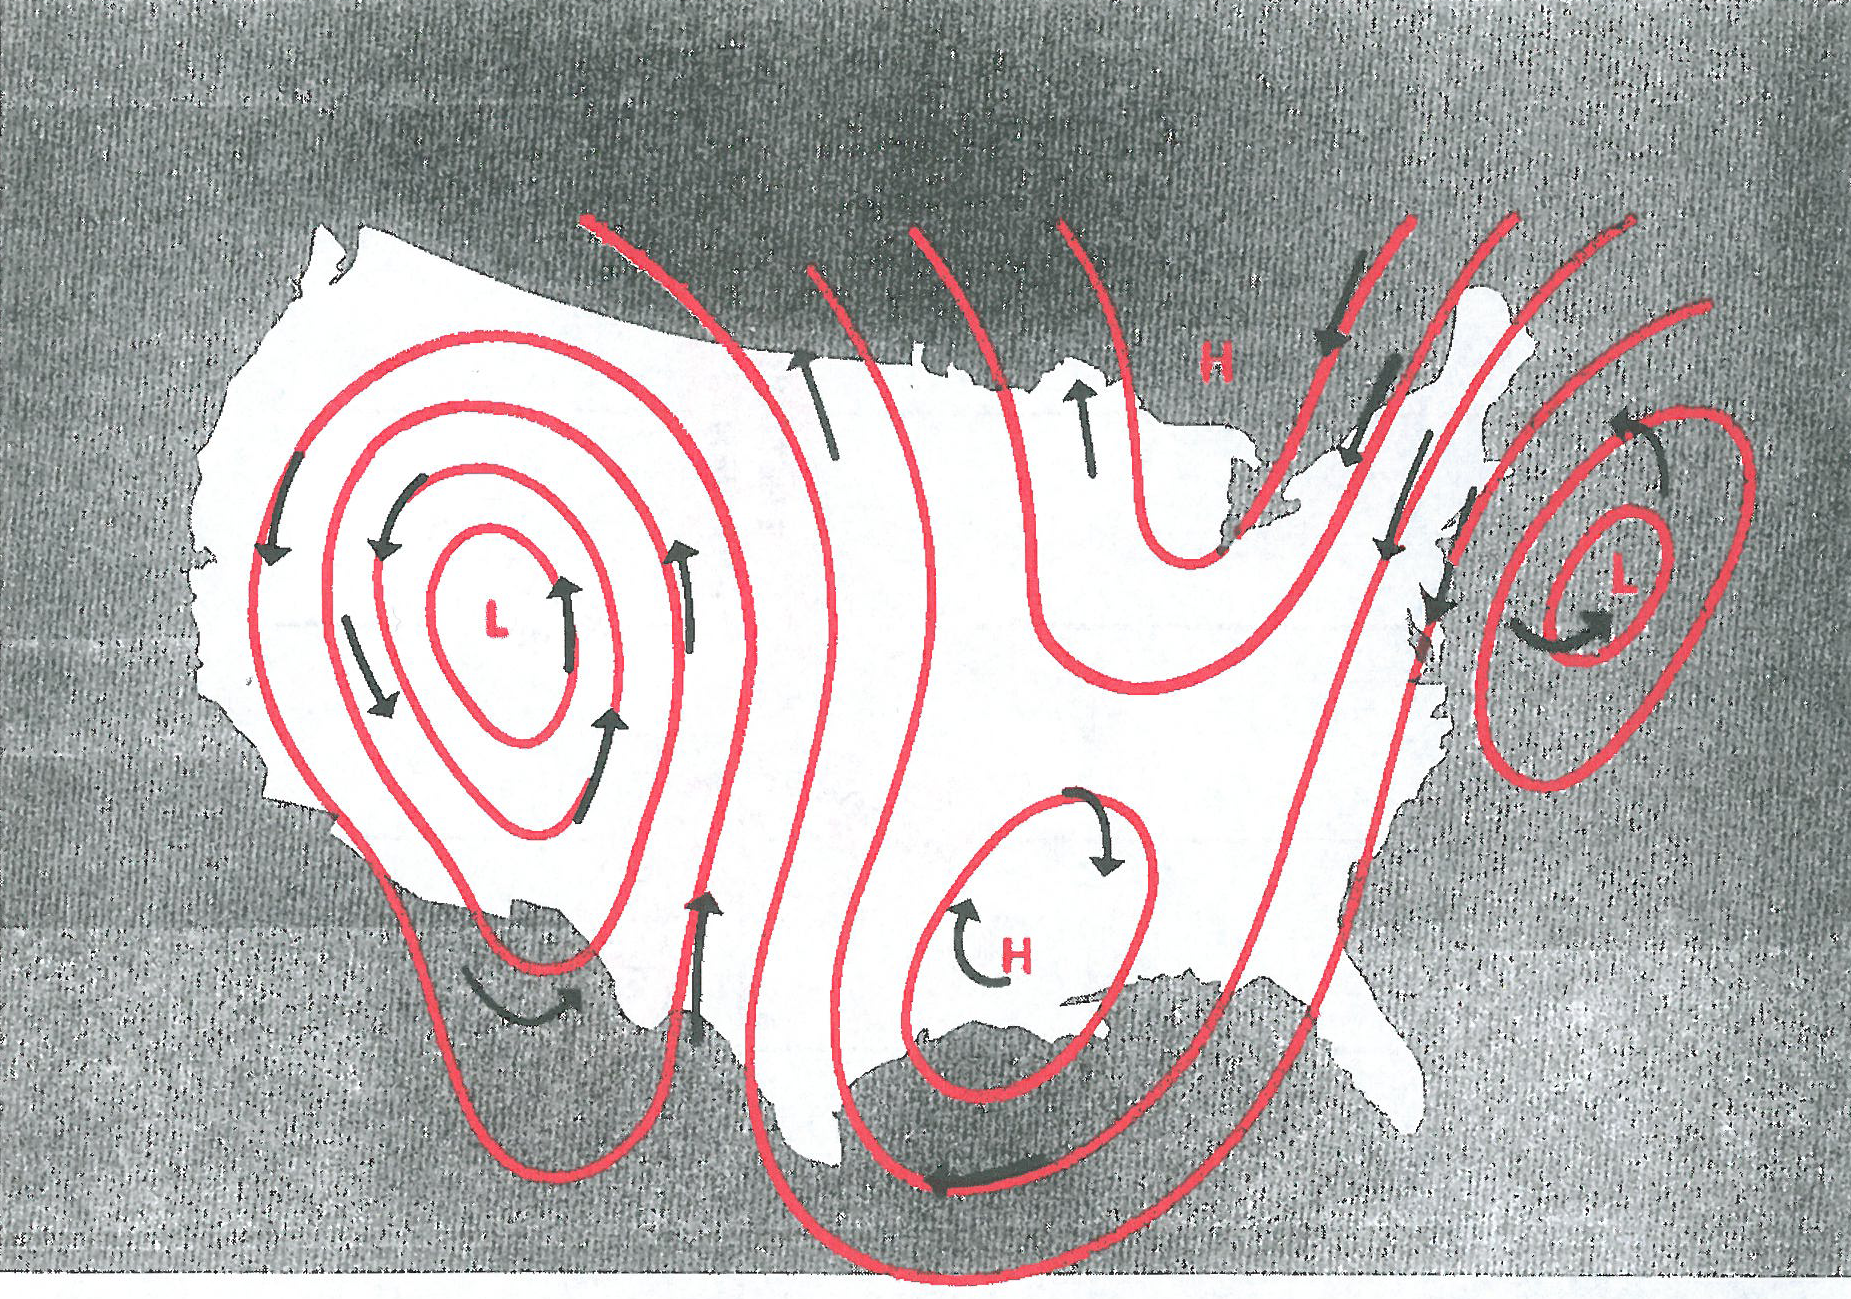 Figure 5. Cyclonic and anticyclonic wind patterns.